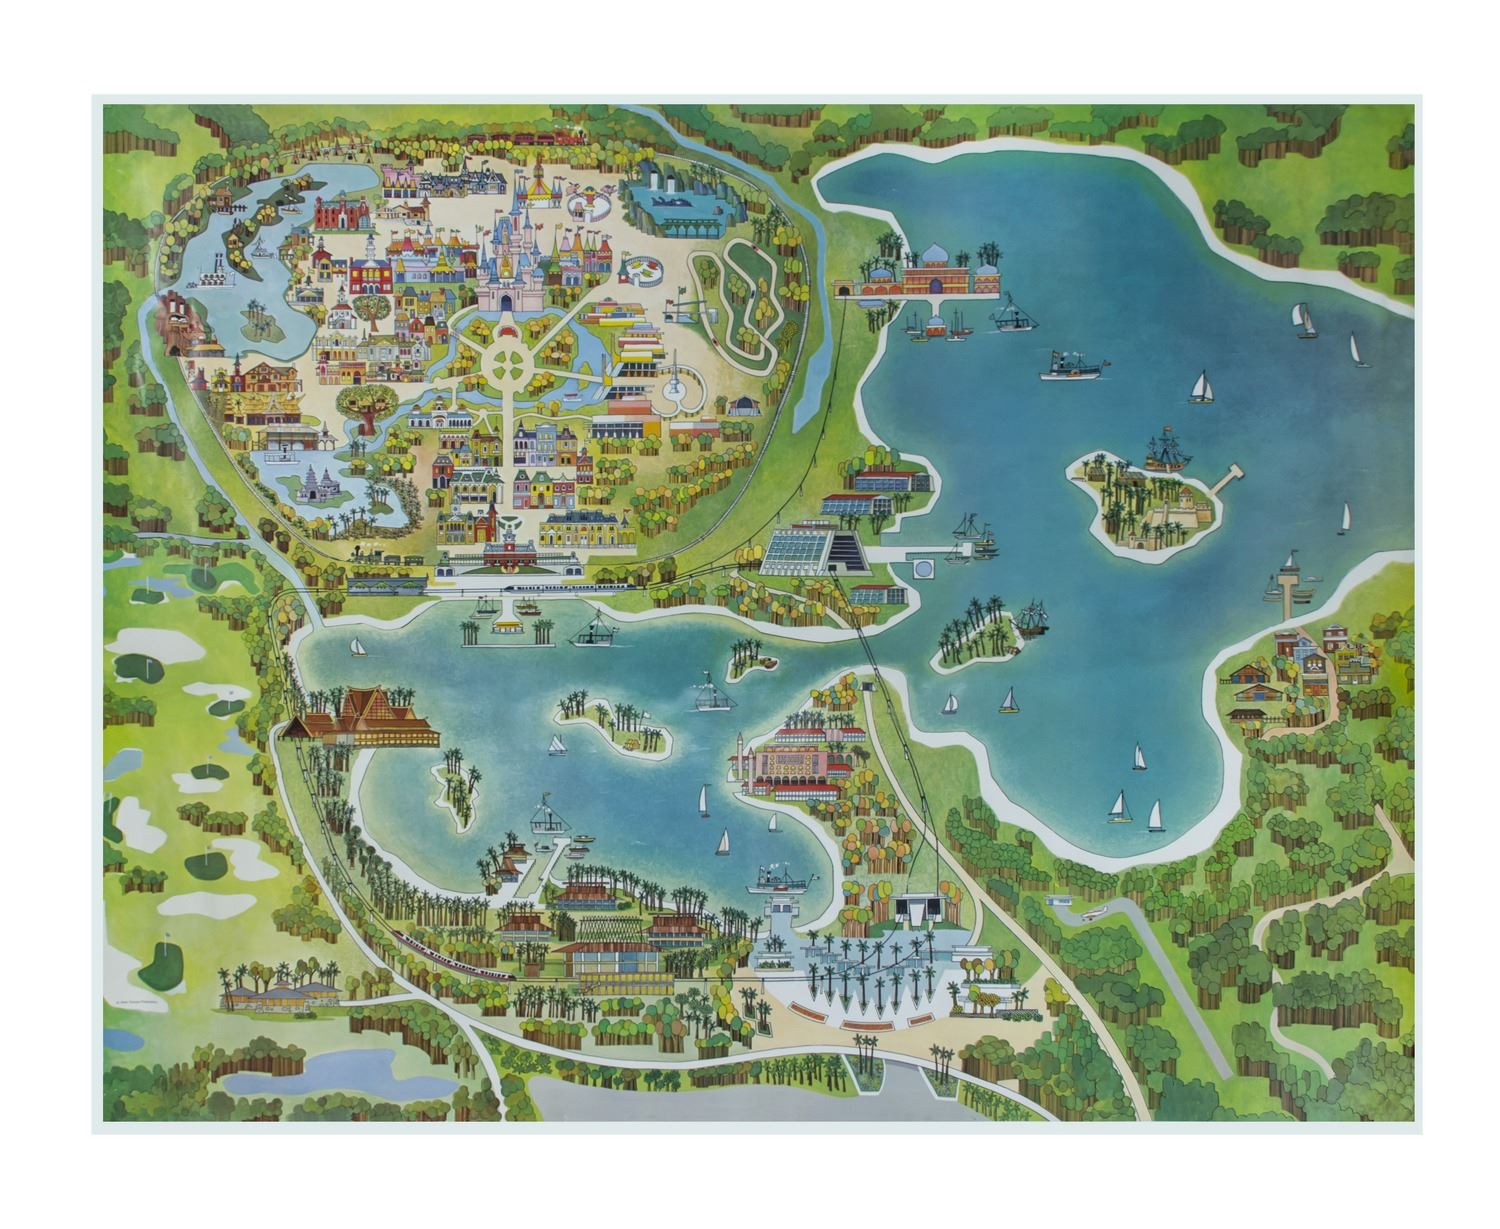 Walt Disney World Oversize Map. on